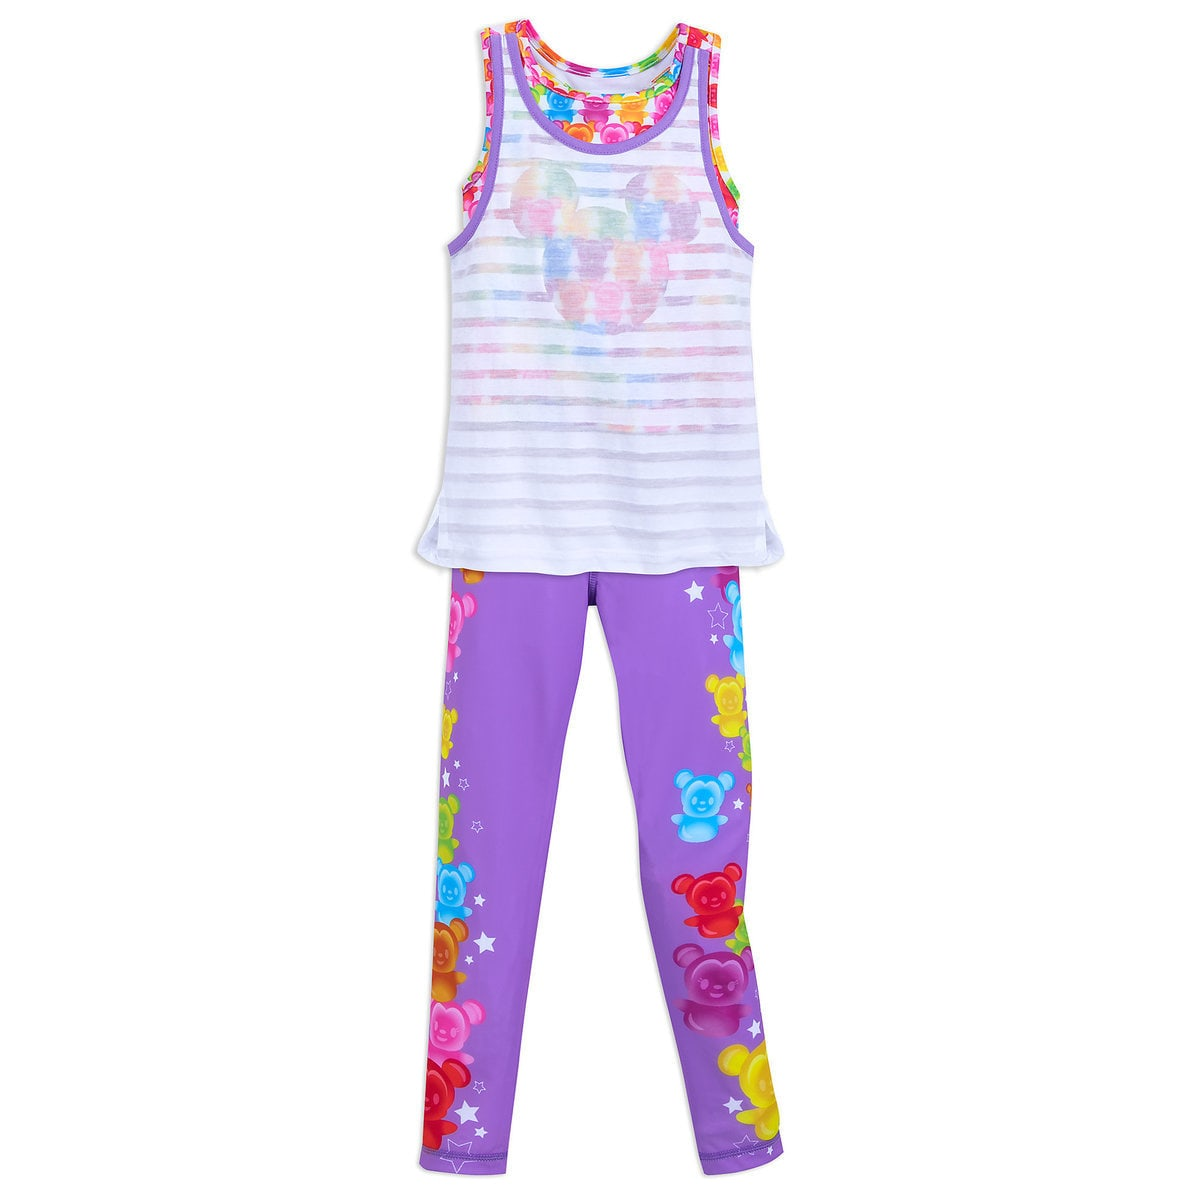 0ad11e1247ef85 Product Image of Mickey and Minnie Mouse Tank Top and Leggings Set for  Girls # 1